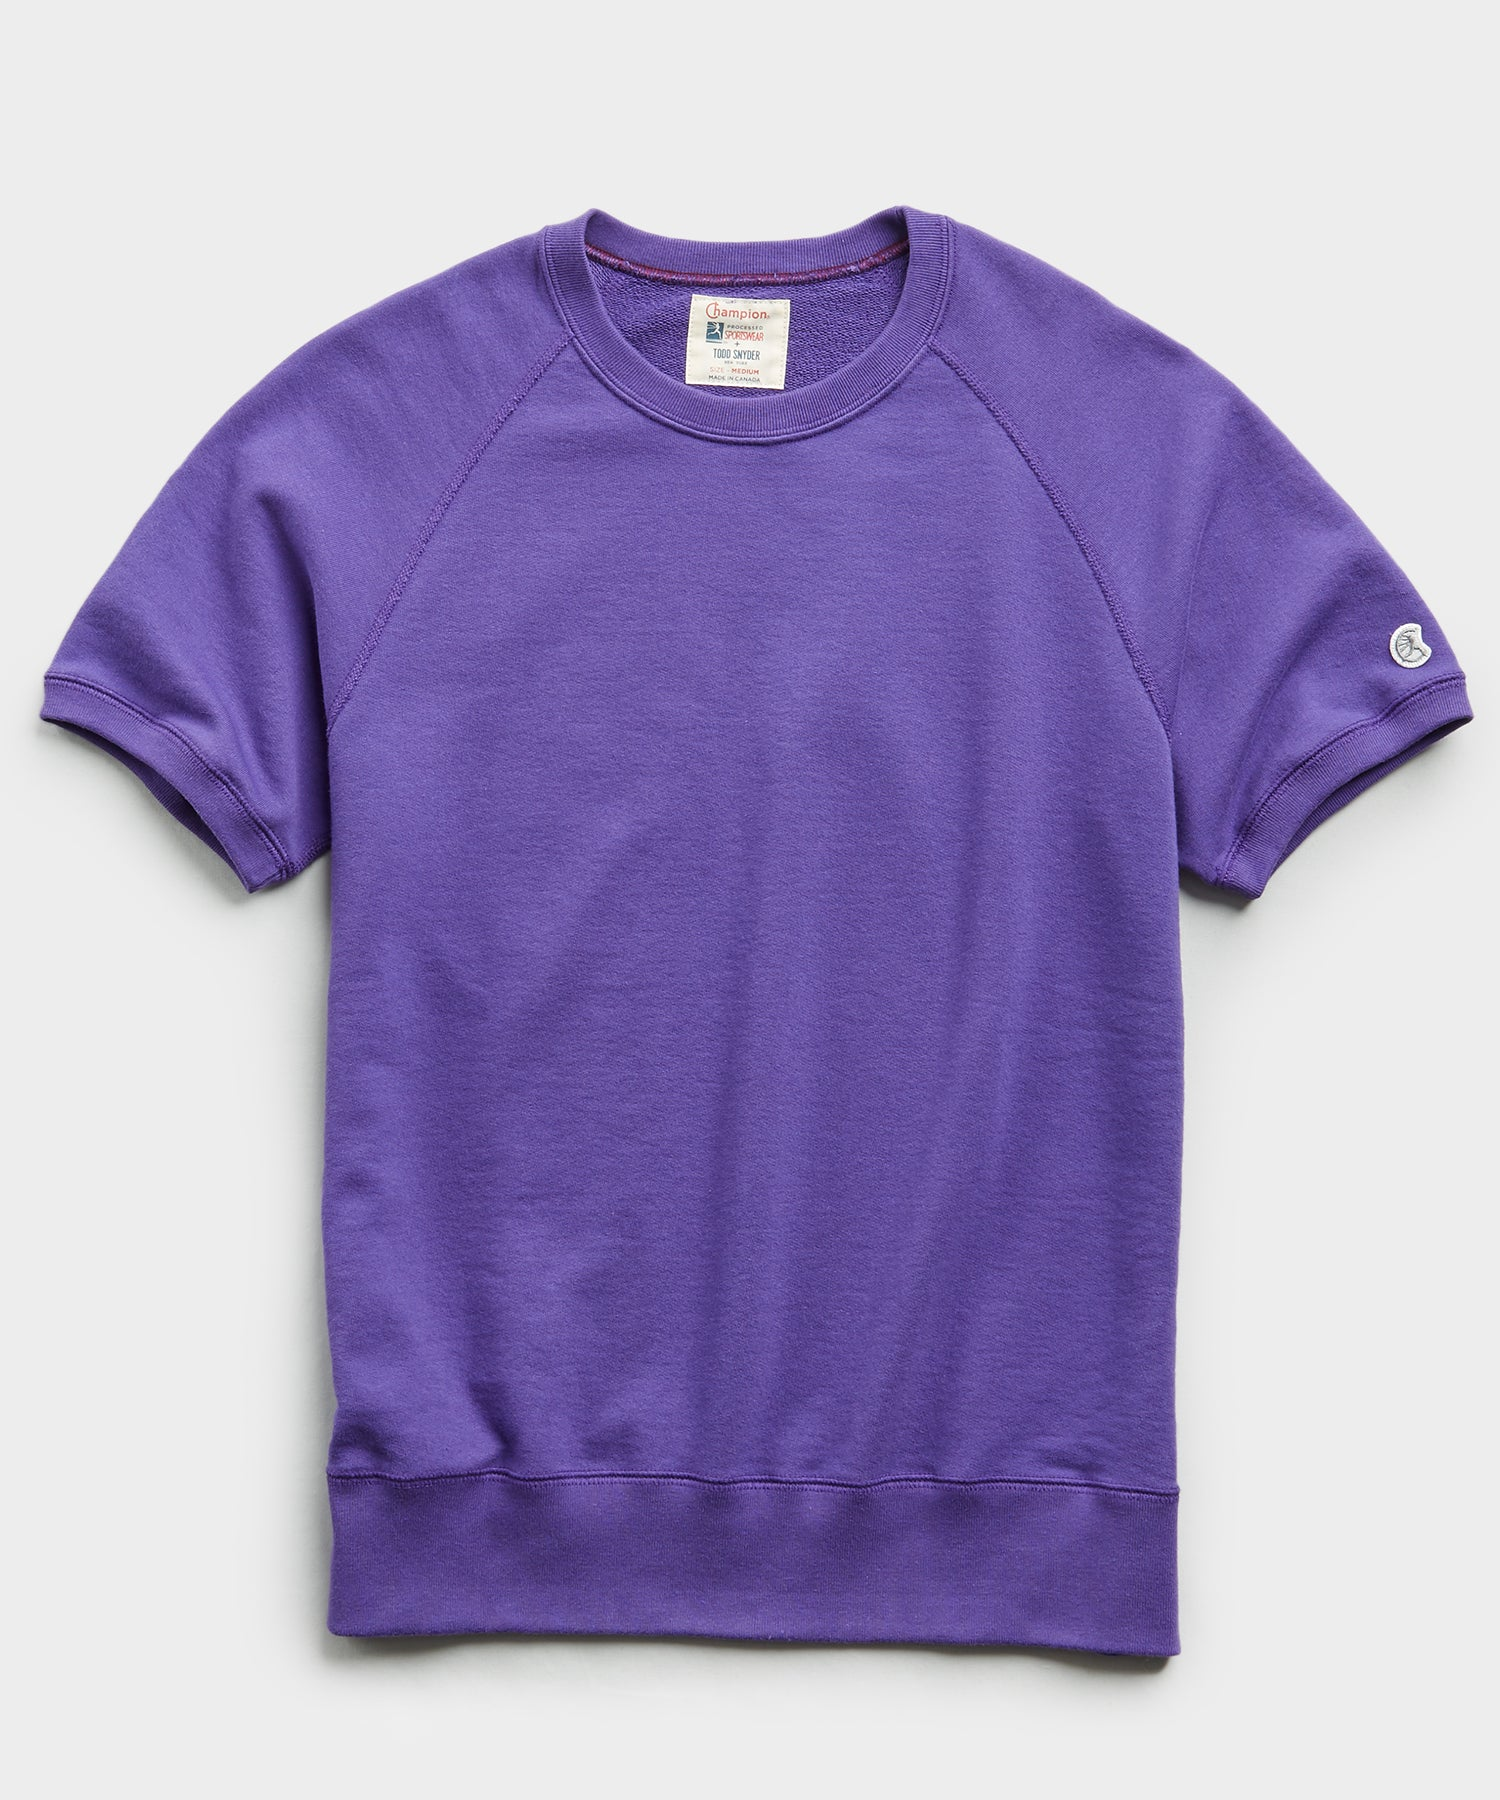 Terry Short Sleeve Sweatshirt in Royal Purple